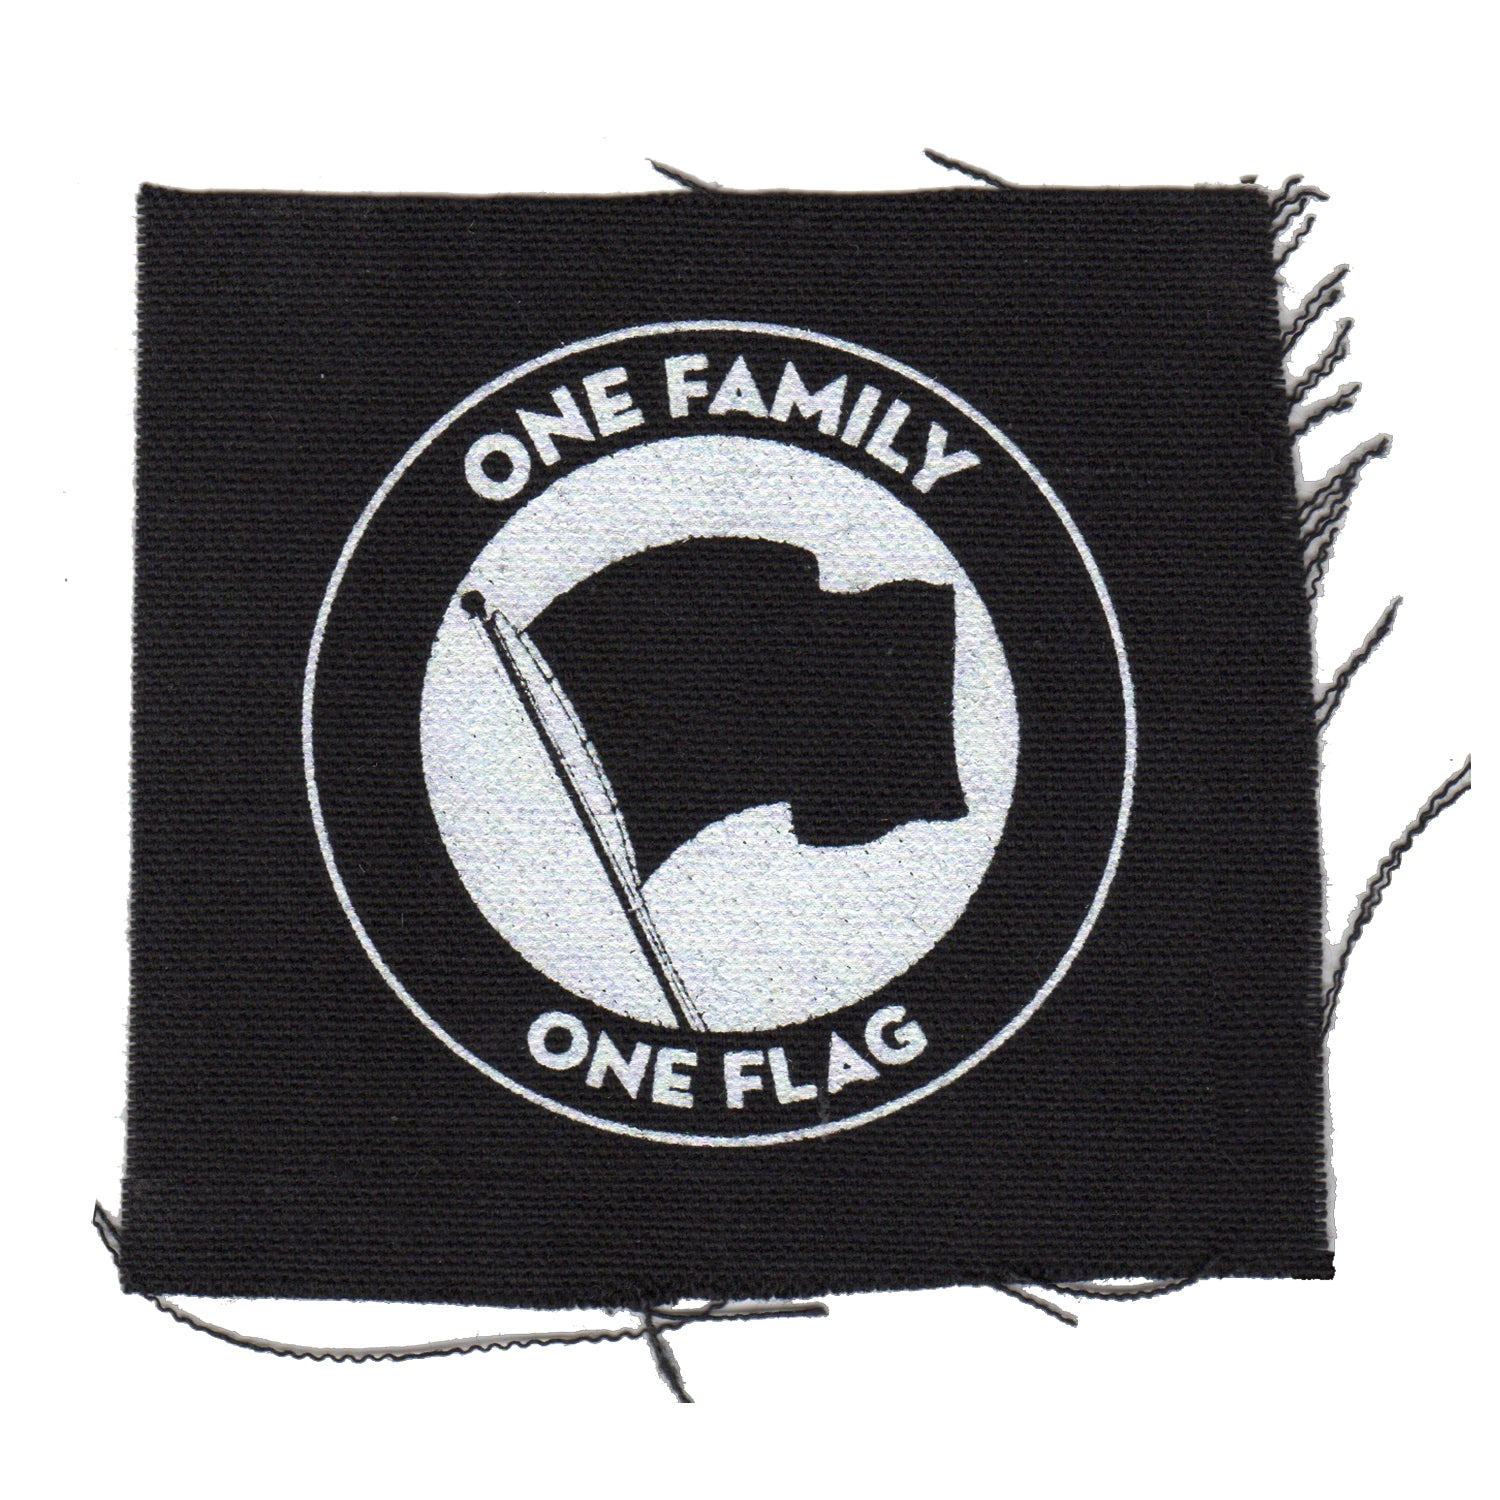 "One Family One Flag - Black - Patch - Cloth - Screenprinted - 4"" x 4"""